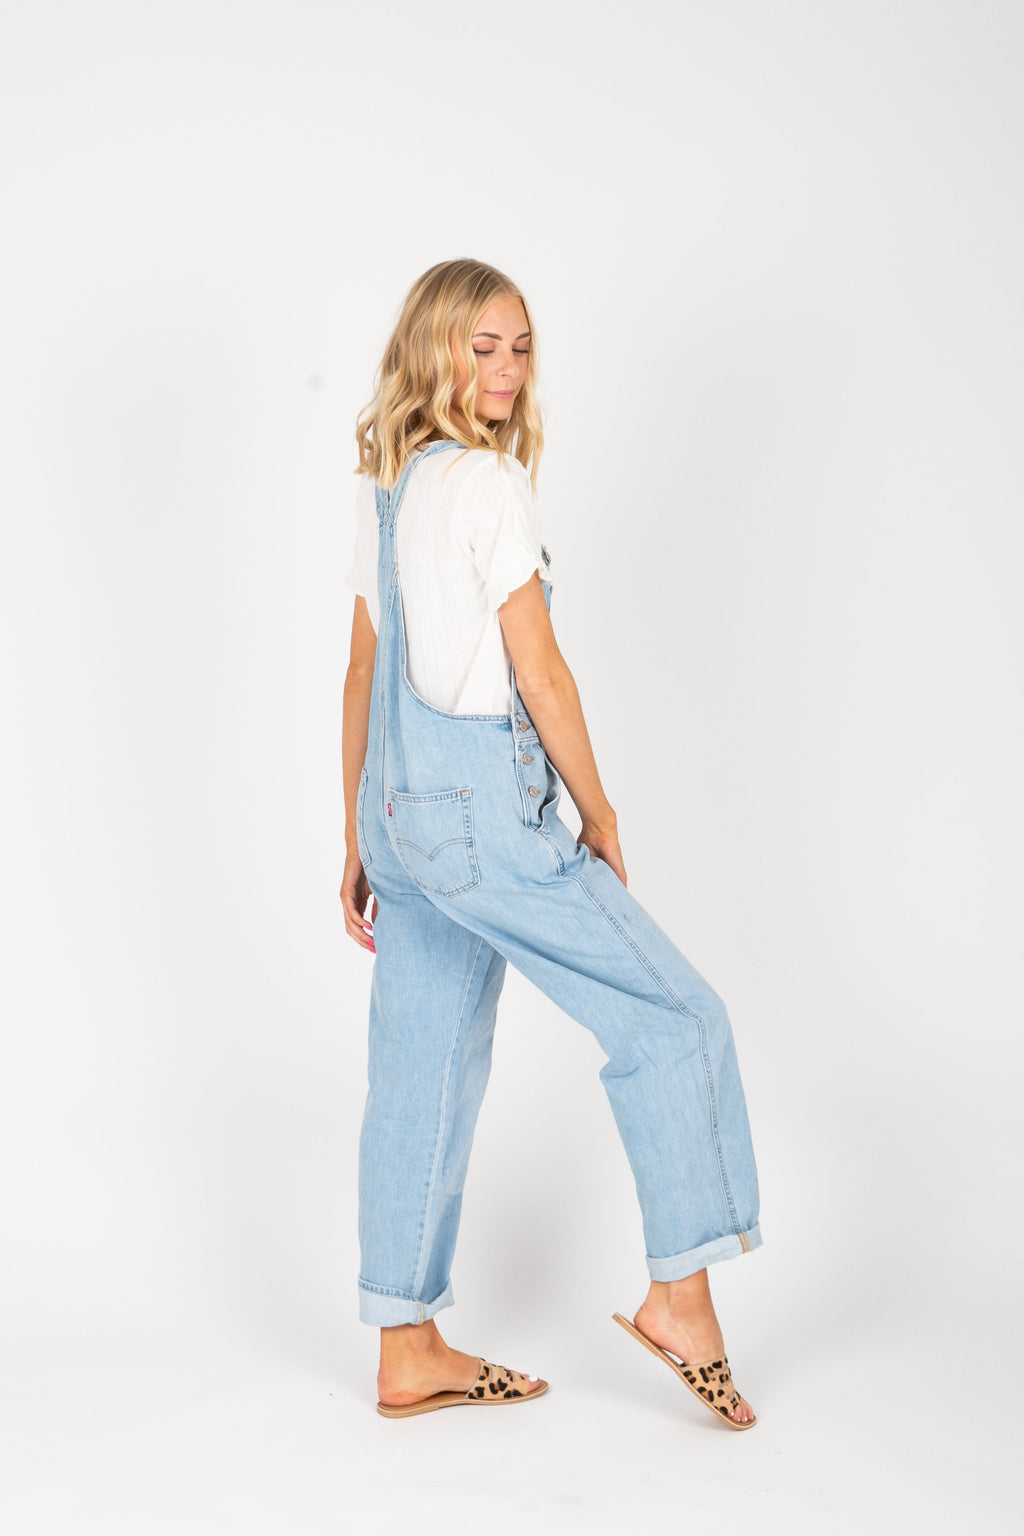 Levi's: Vintage Overalls in Throw Back Medium Wash, studio shoot; back view